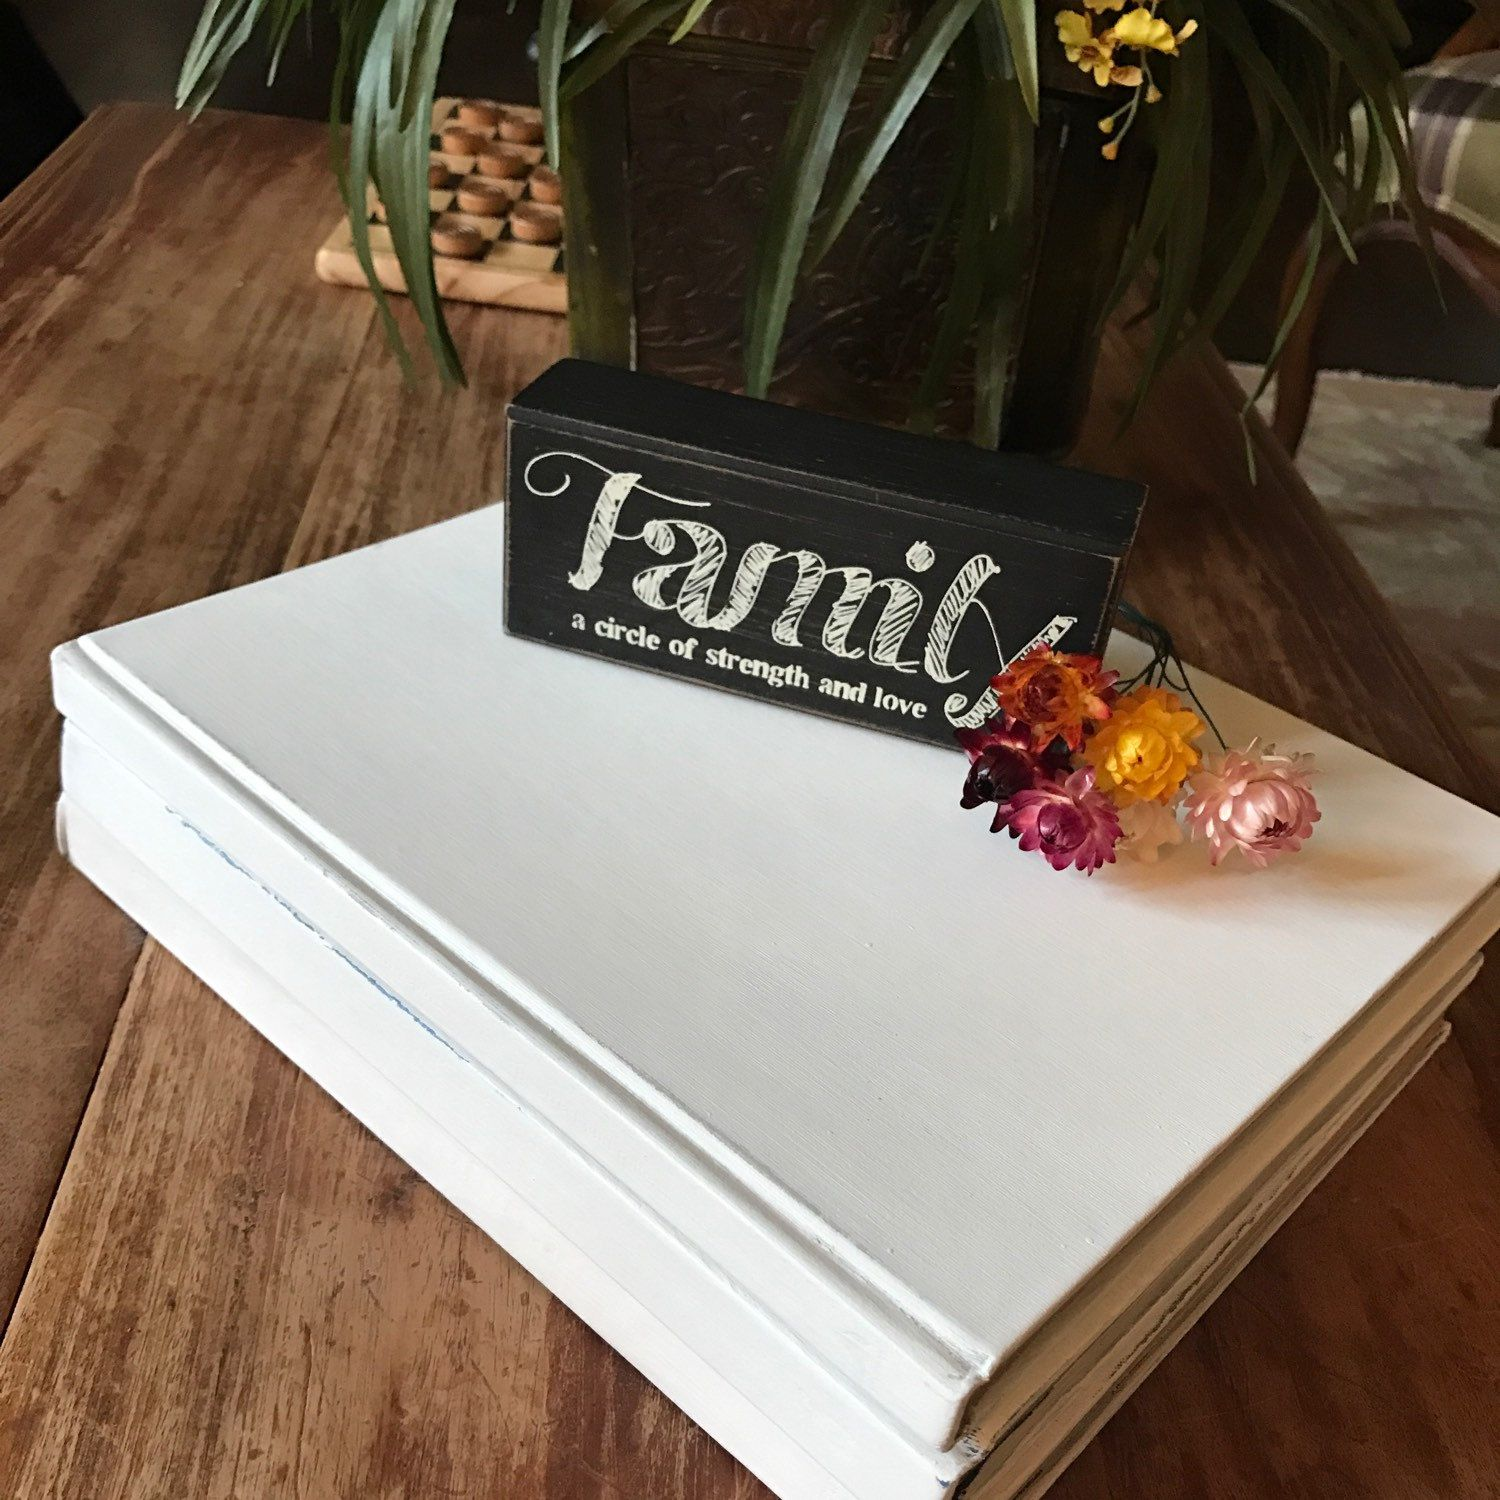 Hand Painted, Larger Books, White Coffee Table Books, Any